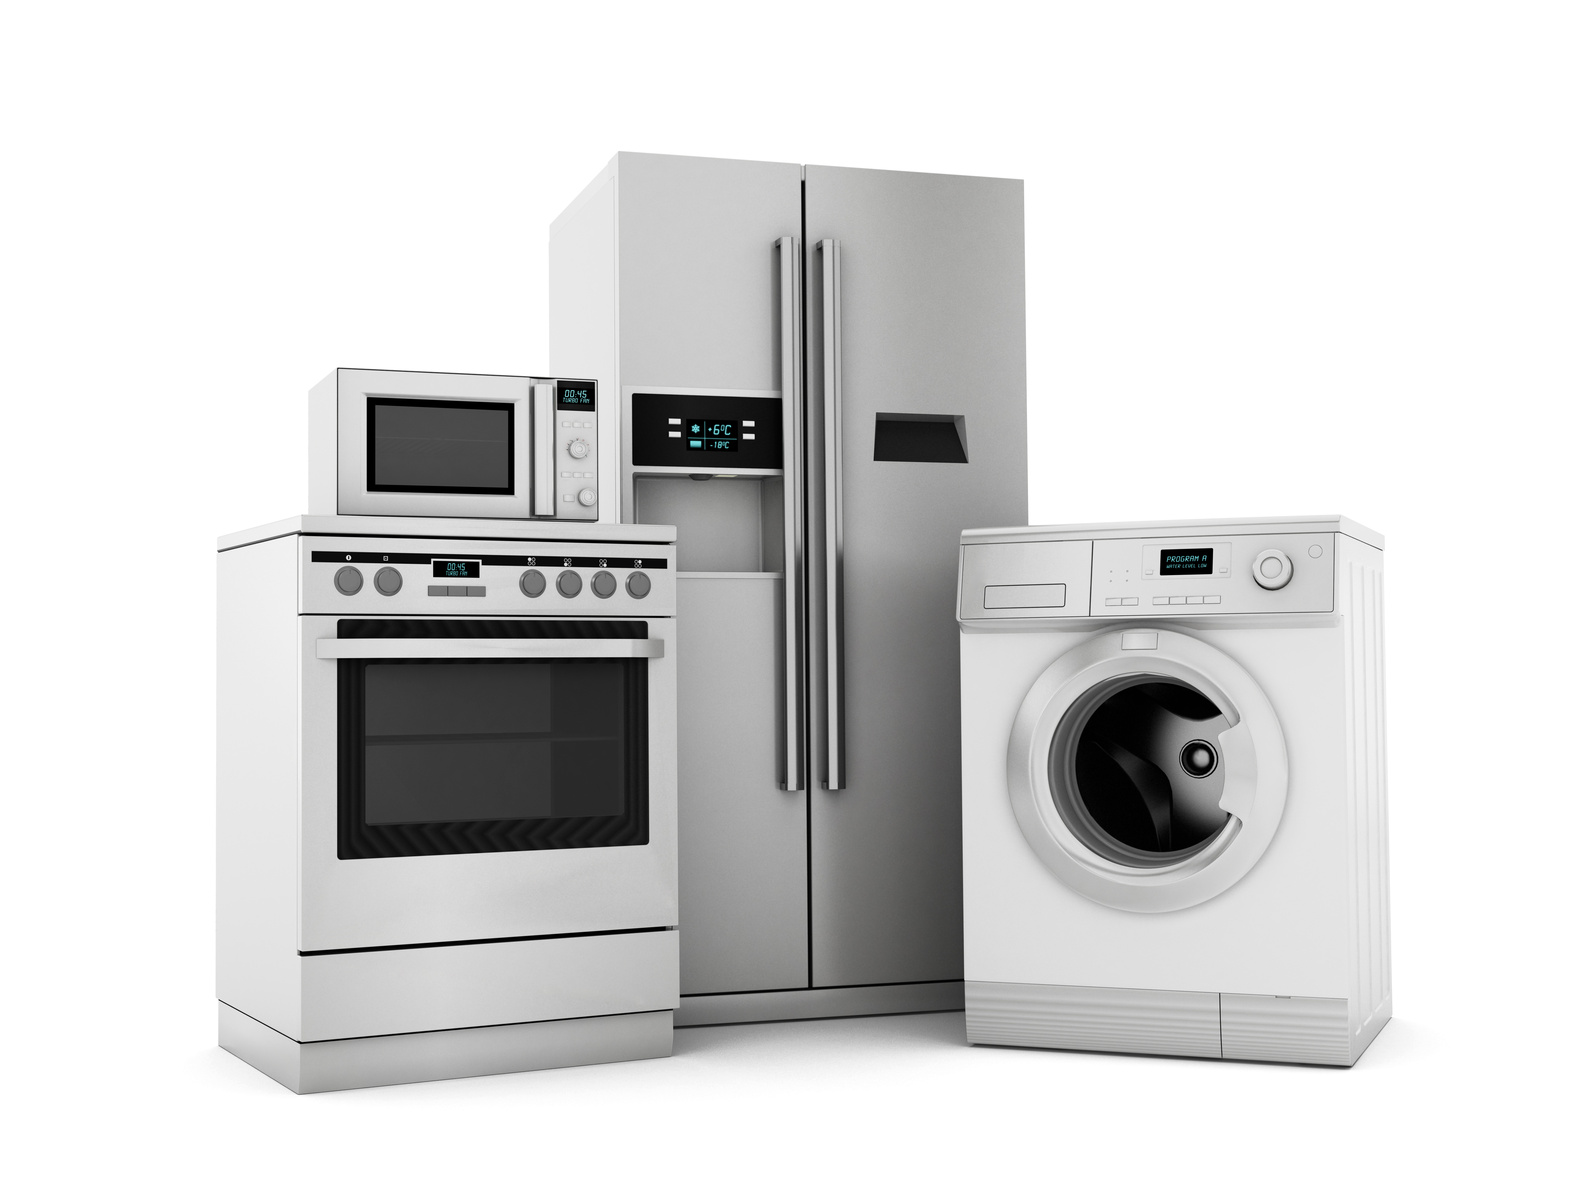 Environmental Concerns Why We Need To Recycle Appliances